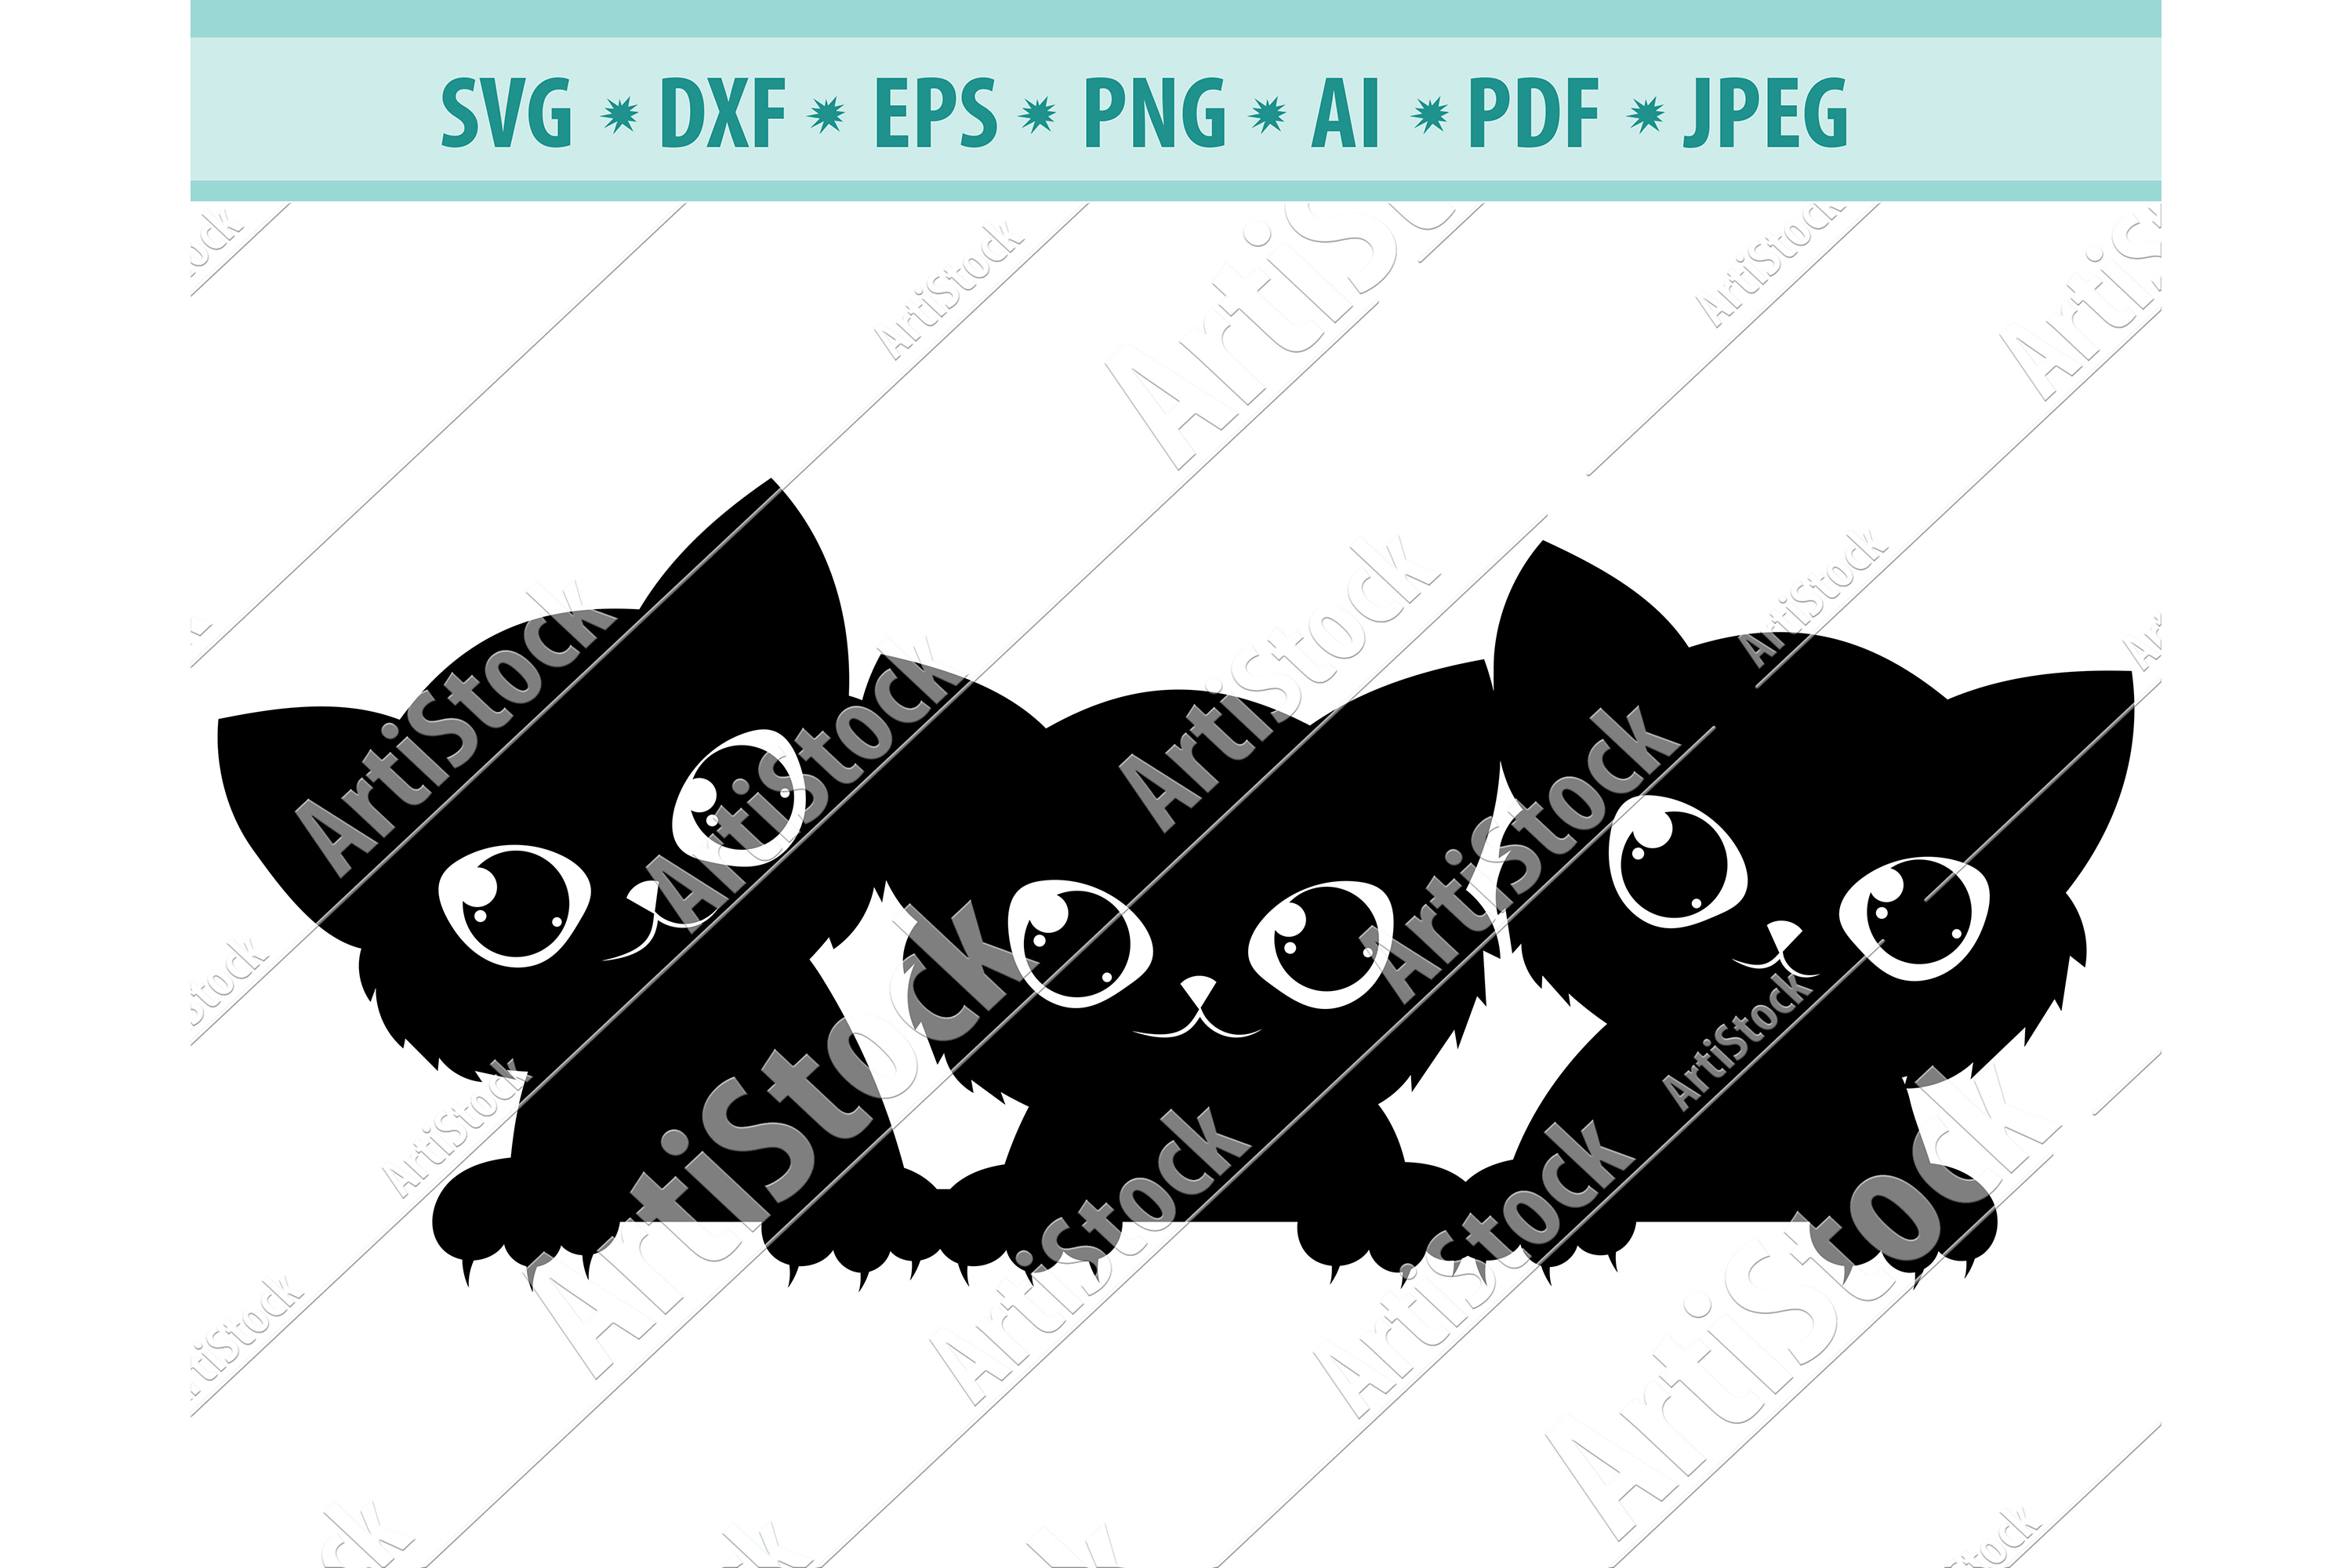 Cats peeking Svg, Cute fun kittens Svg, Pets Dxf, Png, Eps example image 1